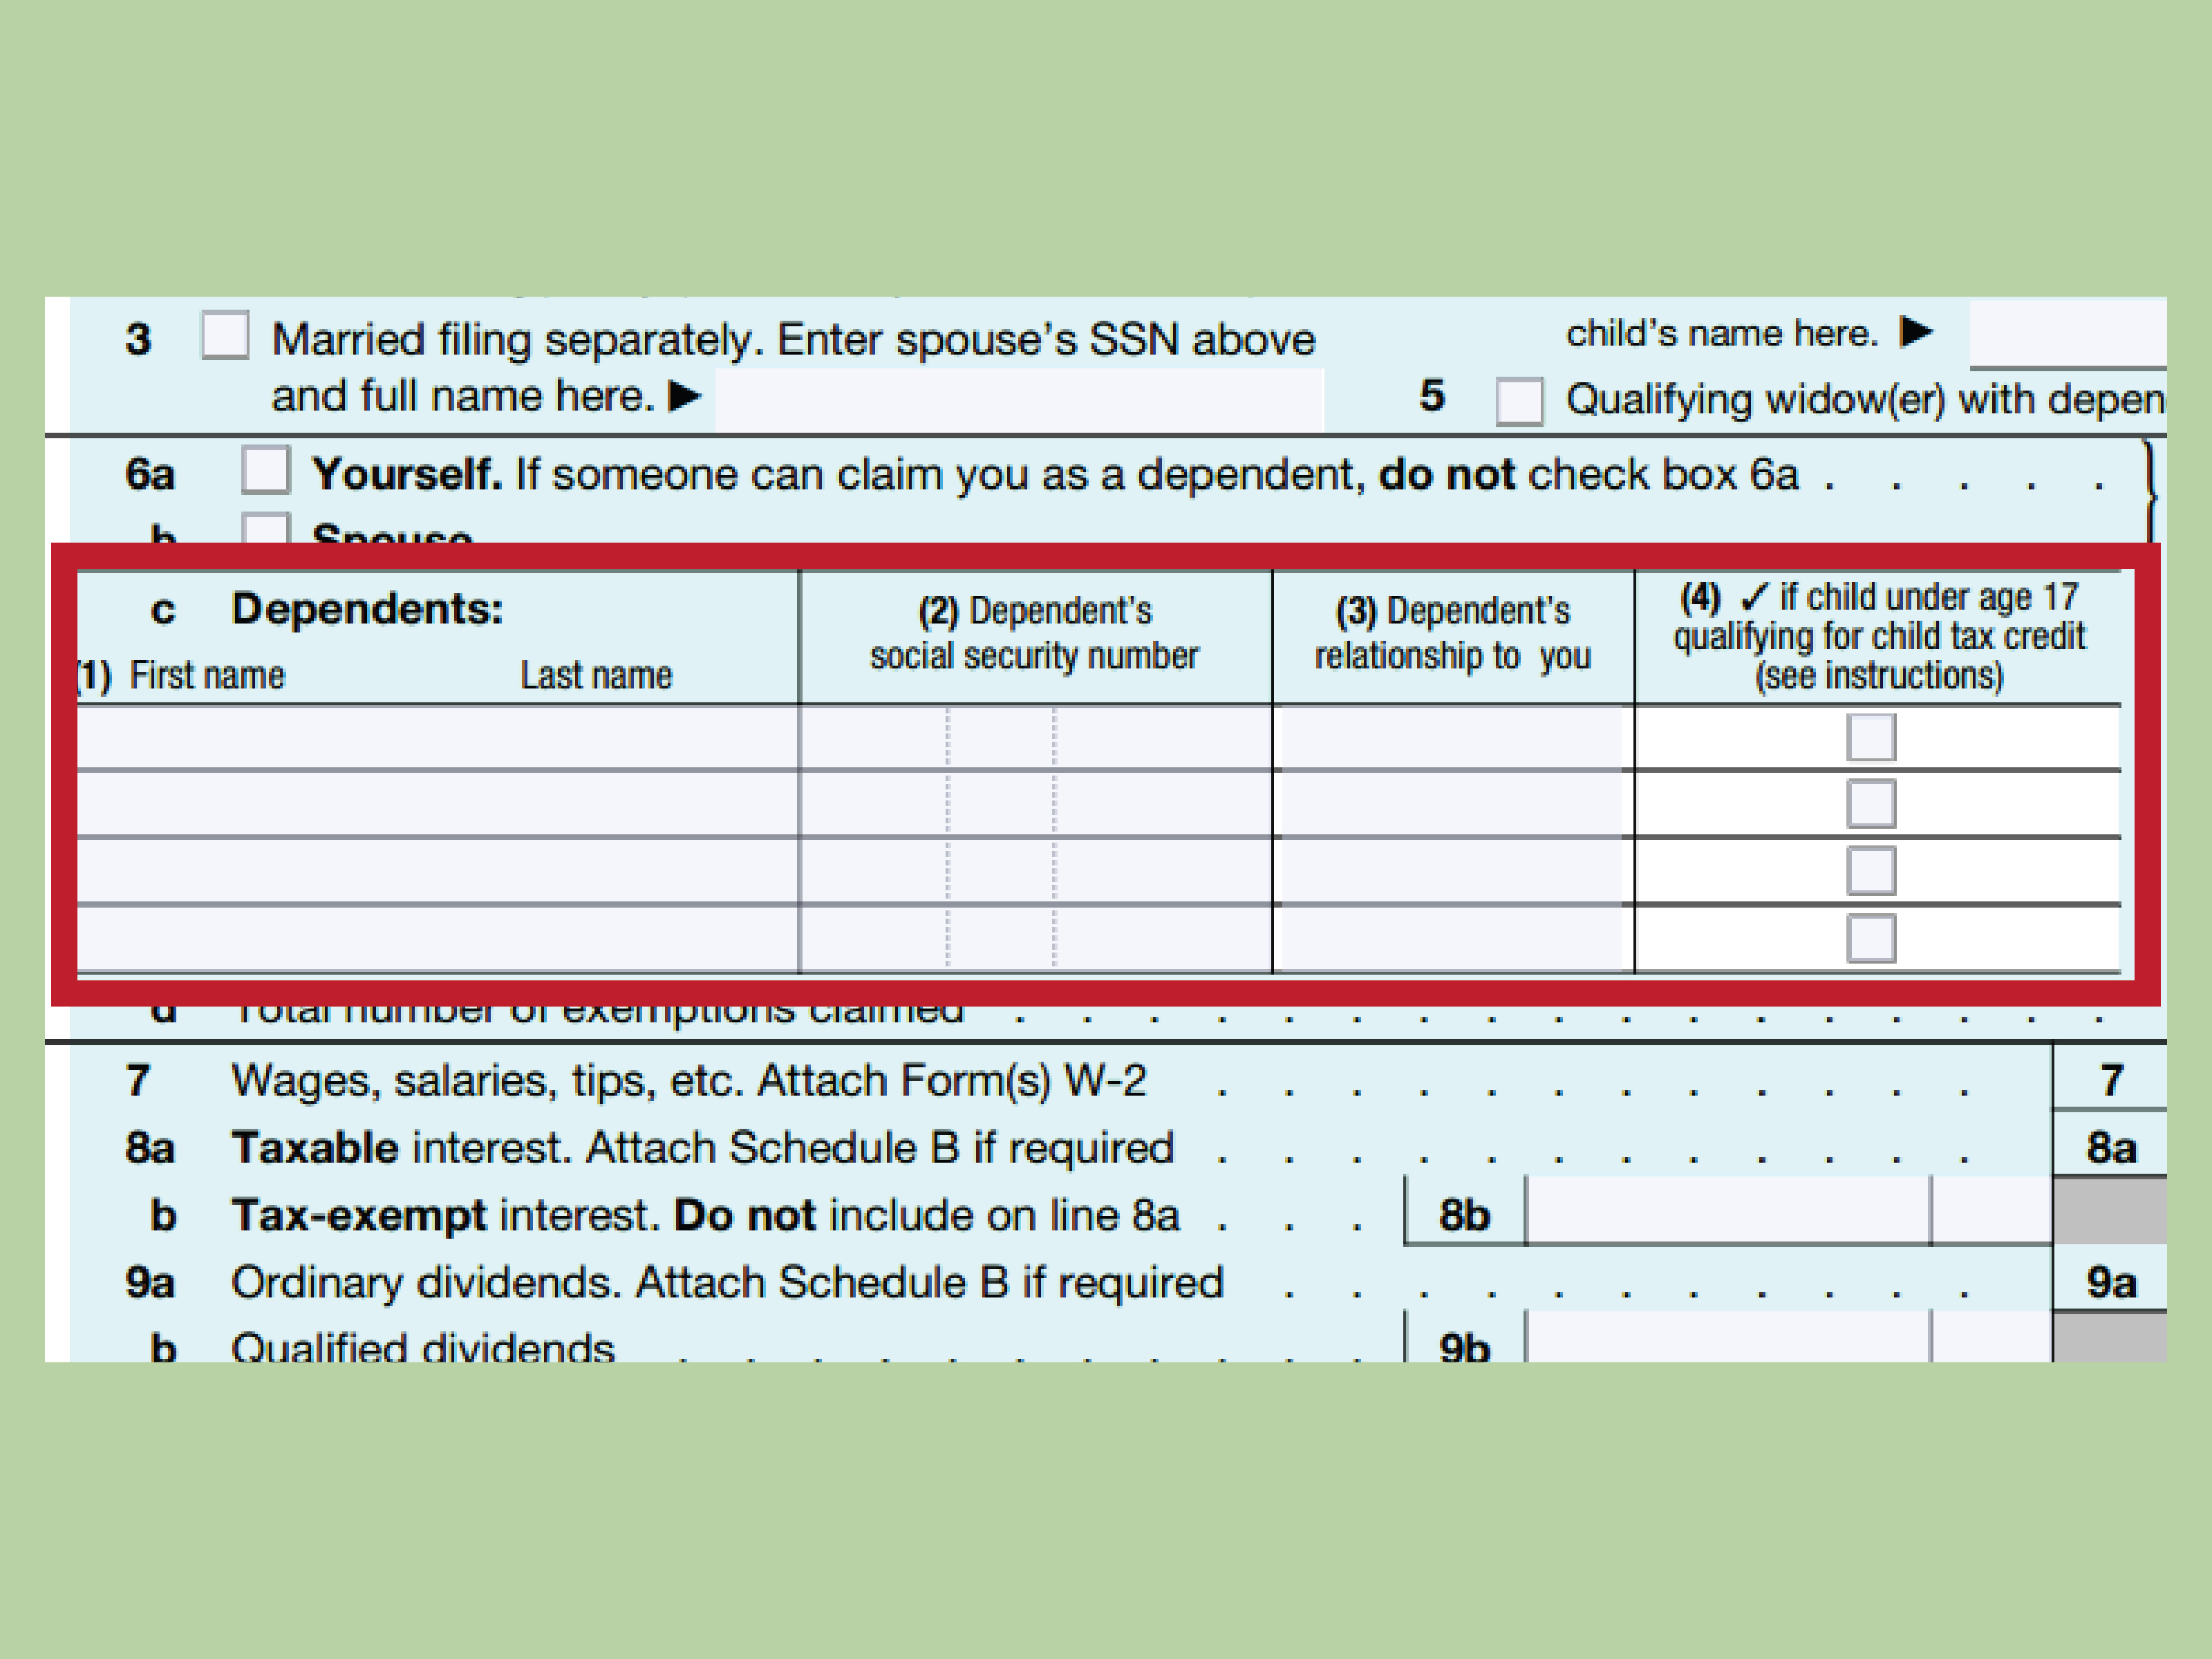 A Standard Deduction Worksheet